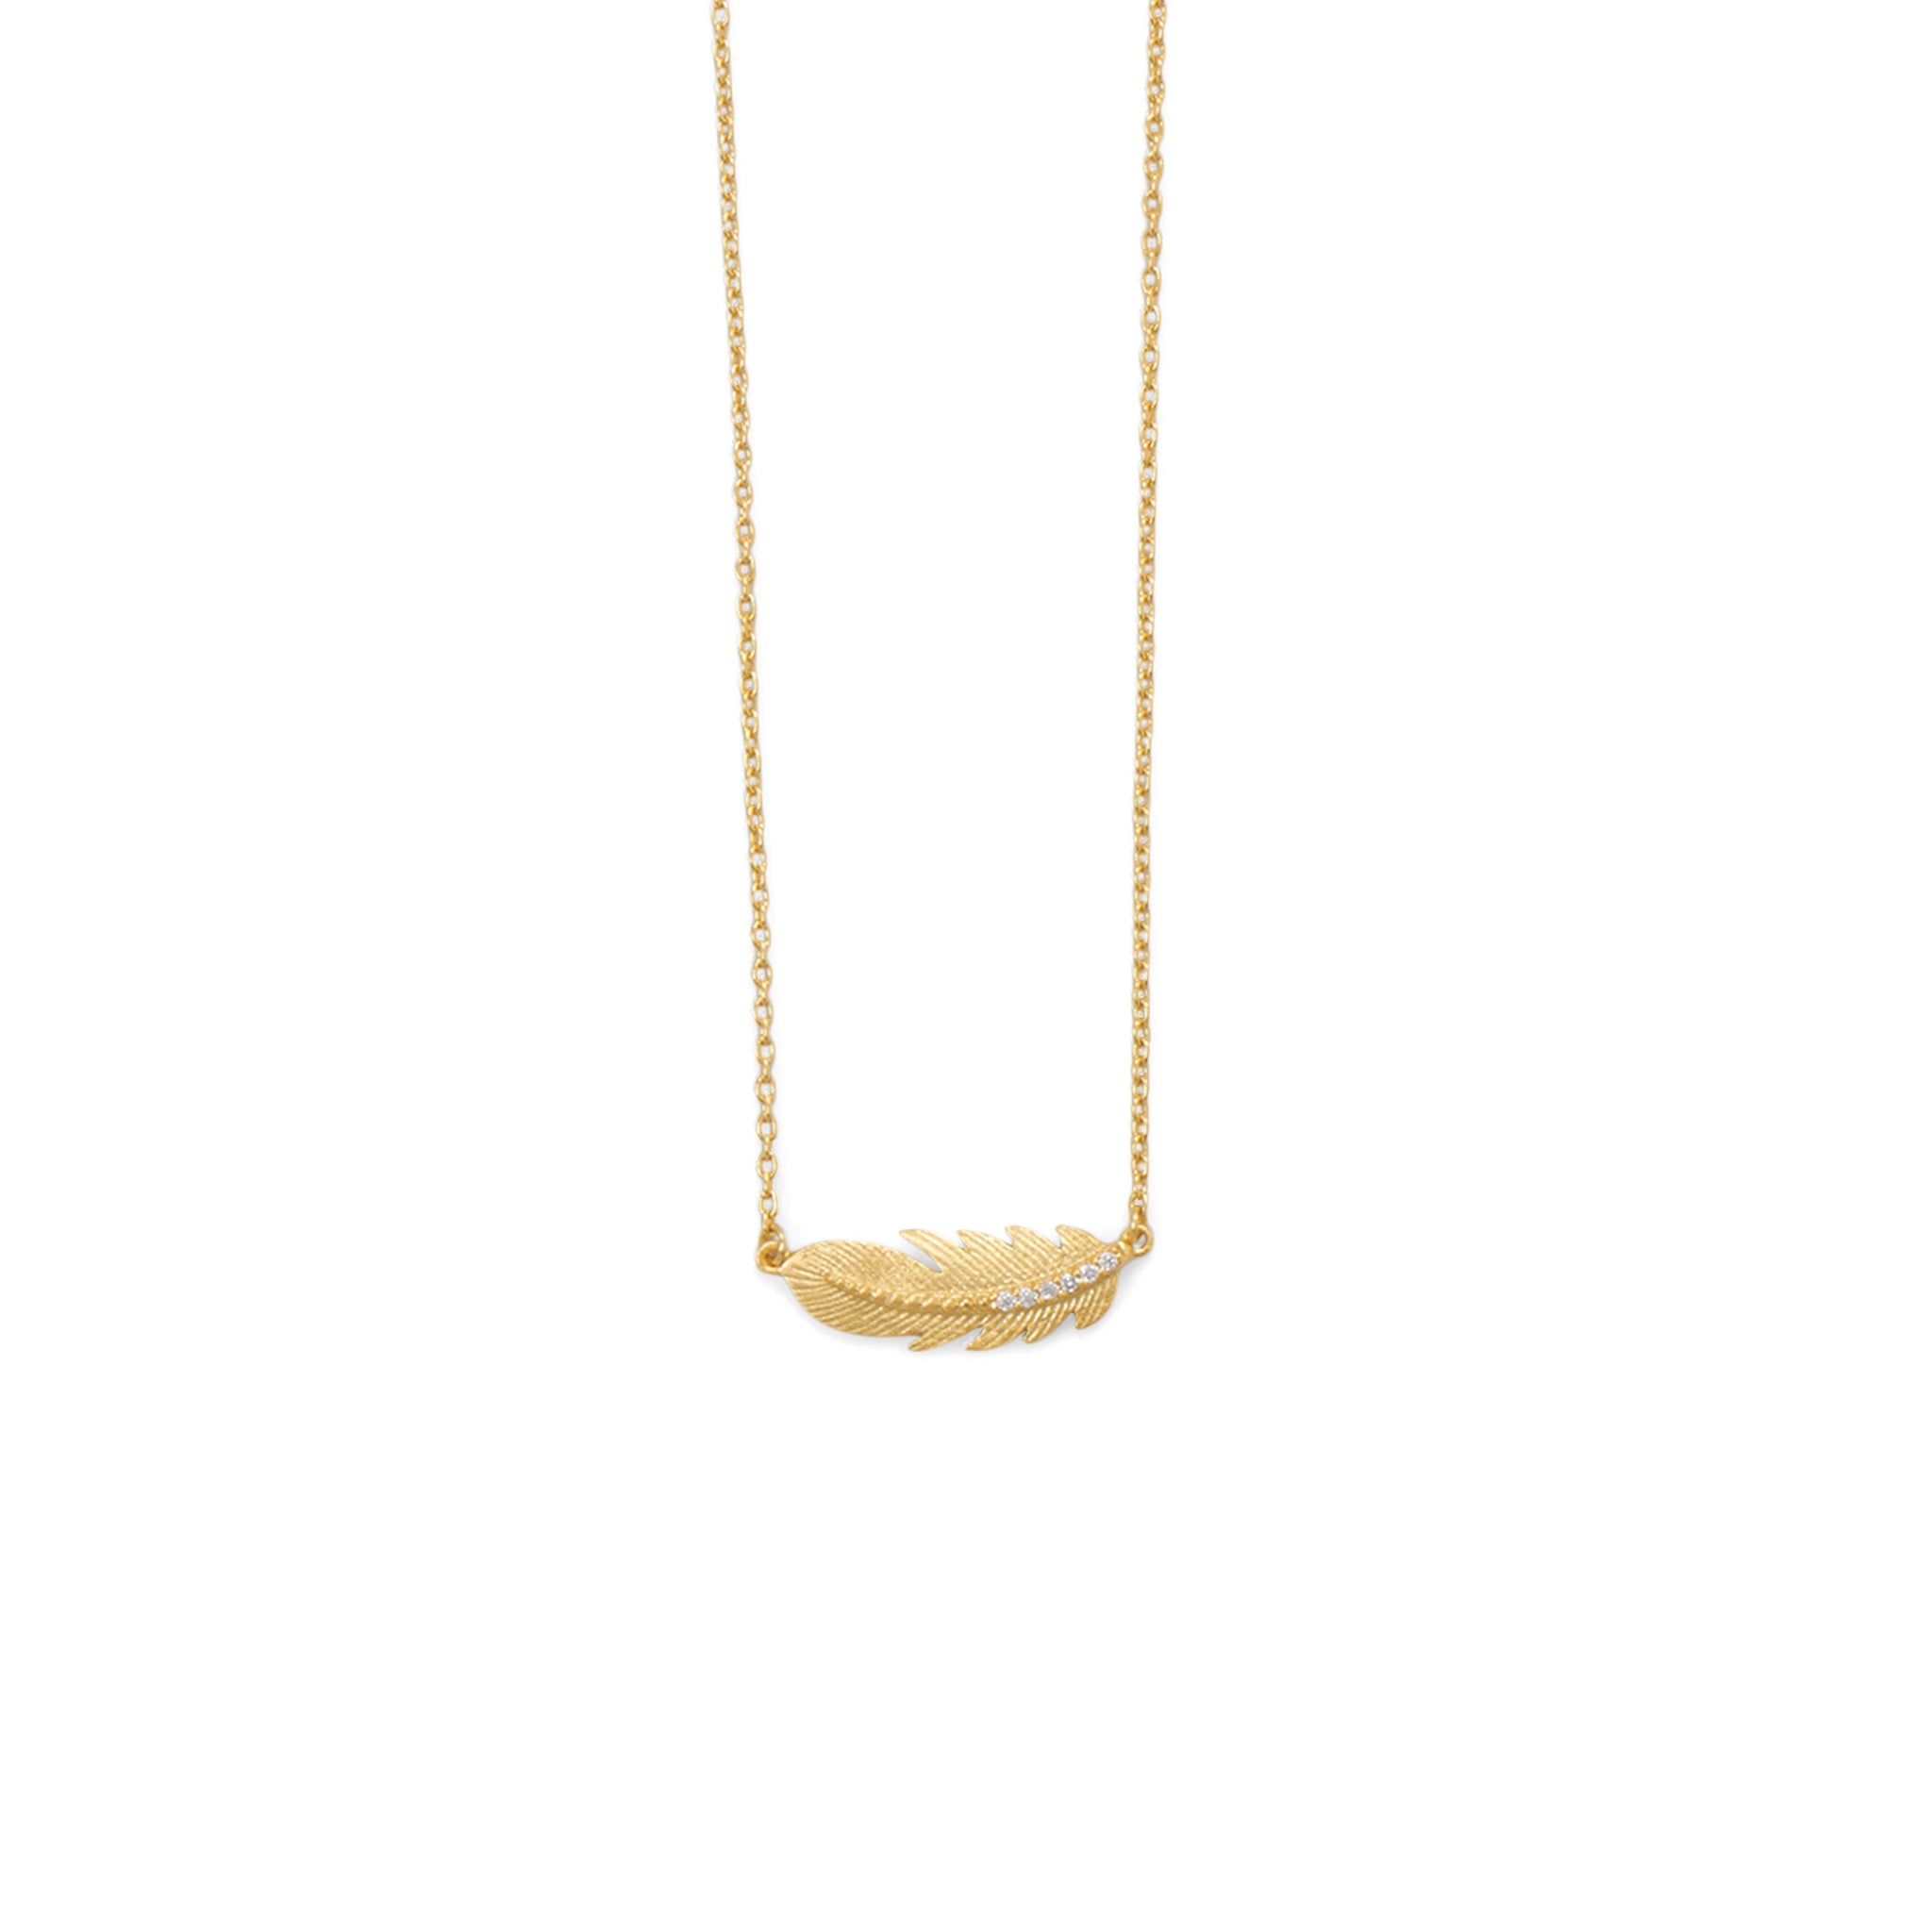 18 Karat Gold Plated Sideways CZ Feather Necklace - Rocky Mt. Outlet Inc - Shop & Save 24/7